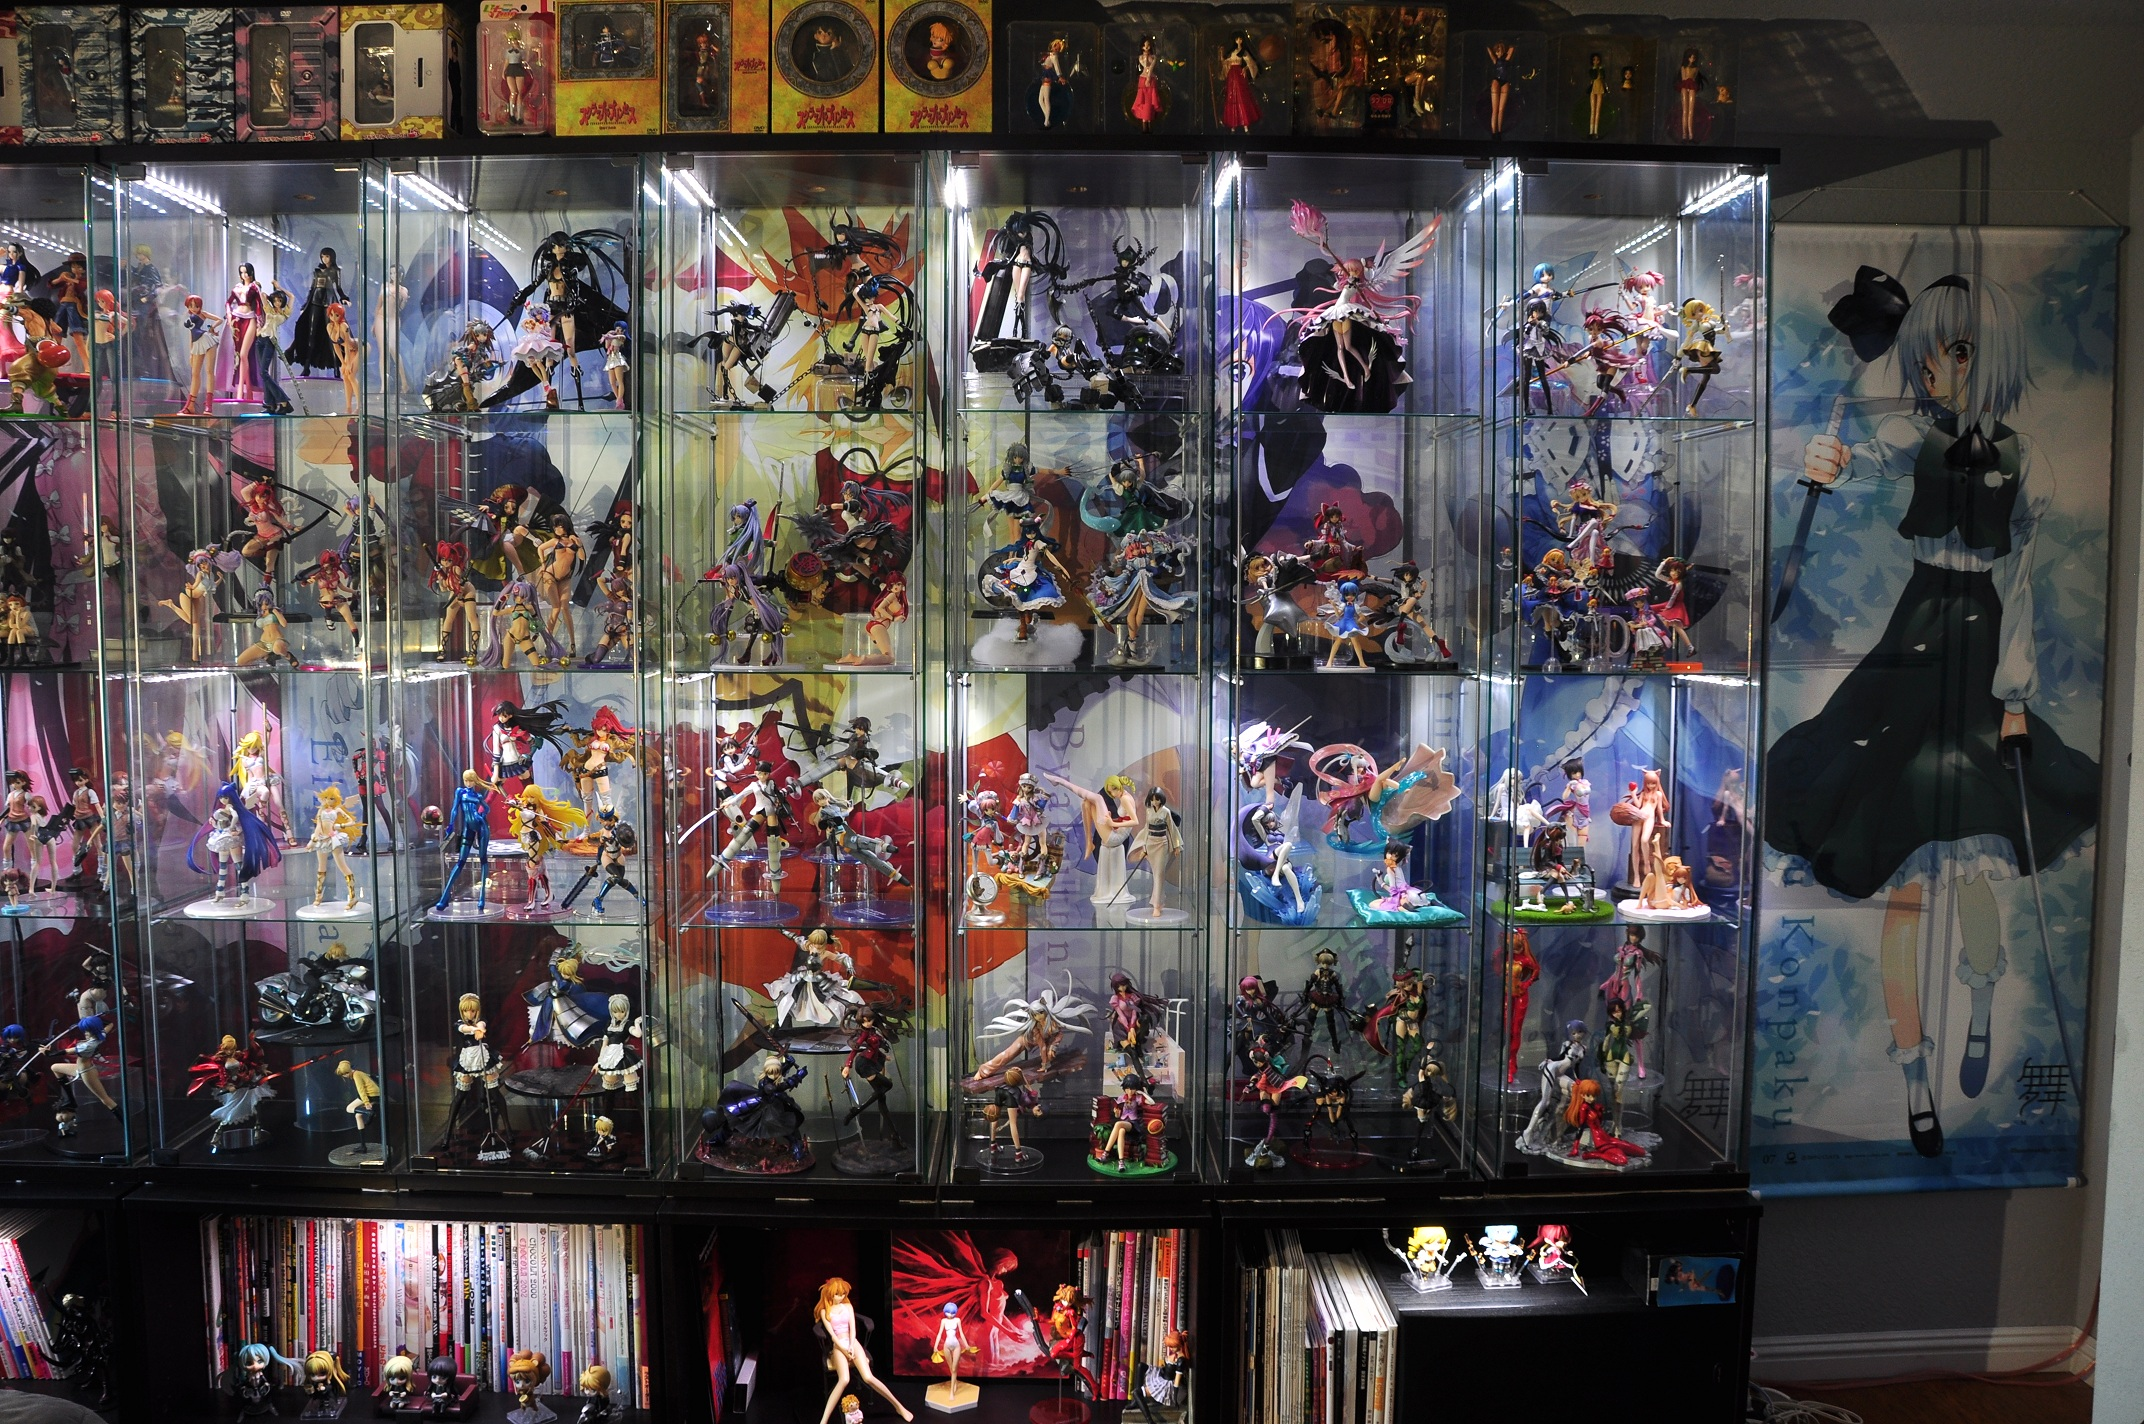 kotobukiya megahouse sega tony_taka huke touhou_project strike_witches miyafuji_yoshika one_piece nico_robin saber alter queen's_blade max_factory queen's_blade_rebellion mirim momohime type_moon ymir konpaku_youmu saber_alter saber_lily ryougi_shiki good_smile_company kara_no_kyoukai nami tohsaka_rin yagyu_jubei hyakka_ryouran hobby_japan izayoi_sakuya excellent_model yoshi fate/stay_night bakemonogatari kirisame_marisa griffon_enterprises orchid_seed alleyne fate/hollow_ataraxia patchouli_knowledge makinami_mari_illustrious dead_master souryuu_asuka_langley yoko_littner tashigi kanbaru_suruga fukumoto_noritaka oboro_muramasa chieri boa_hancock shin_seiki_evangelion queen's_gate blanc_neige shining_tears ques_q evangelion_shin_gekijouban fate/unlimited_codes team_shanghai_alice otsuyama_houjun yagyuu_toshiyuki black_★_rock_shooter kawanishi_ken hiroshi_(sakurazensen) ajiken marvelous_entertainment oda_eiichiro portrait_of_pirates_dx kibayashi_norio portrait_of_pirates_strong_edition tokunaga_hironori takahashi_tsuyoshi akiyama_akio new_line utamaro tengen_toppa_gurren-lagann yokota_ken attm kawahara_takayuki nanashi makio_munetoshi kuramoto_ikuma portrait_of_pirates_neo khara aniplex nishimura_naoki ichijinsha hattori_hanzou guhico gotou_matabei naoe_kanetsugu arai_kyousuke ufotable nasu_kinoko kawagoe_hiromitsu fate/stay_night_unlimited_blade_works tokiame portrait_of_pirates_original_series misono_okito nishii